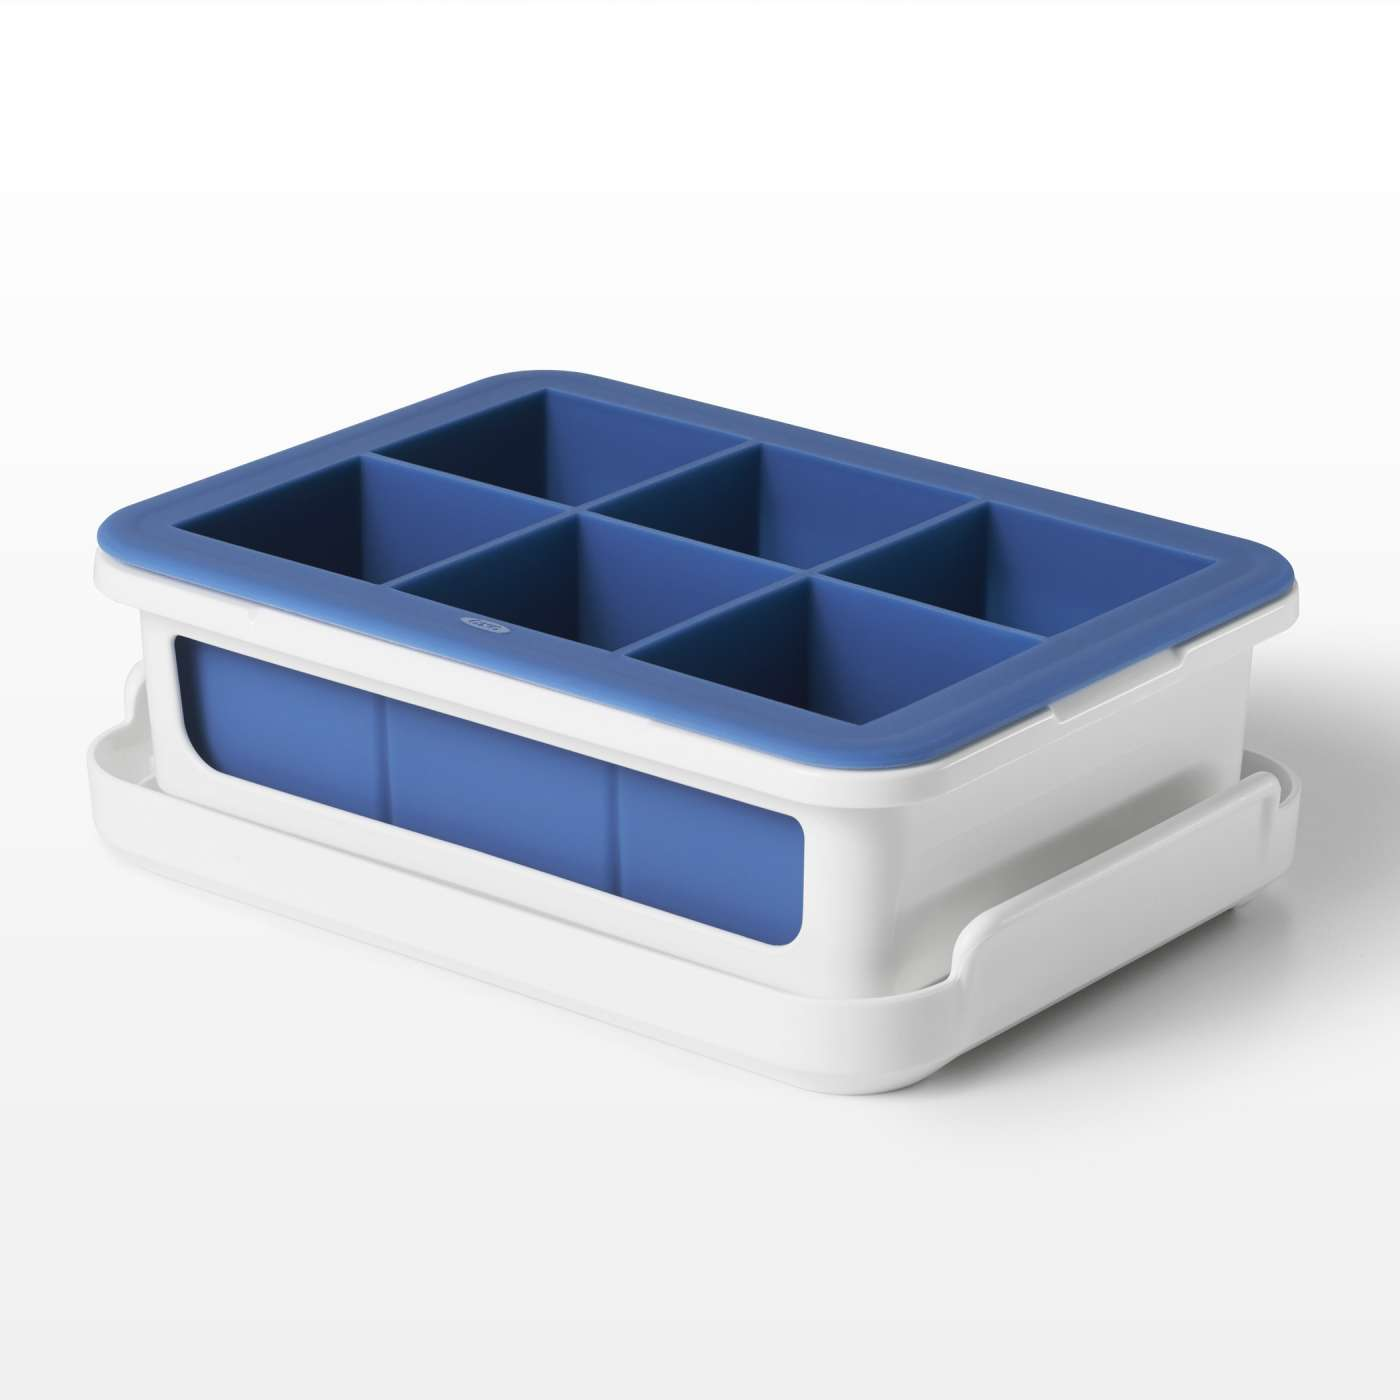 Regaling Covered Silicone Ice Cube Tray Large Cube 11154200 6 Silicone Ice Cube Trays Reviews Silicone Ice Cube Trays Vs Plastic nice food Silicone Ice Cube Trays